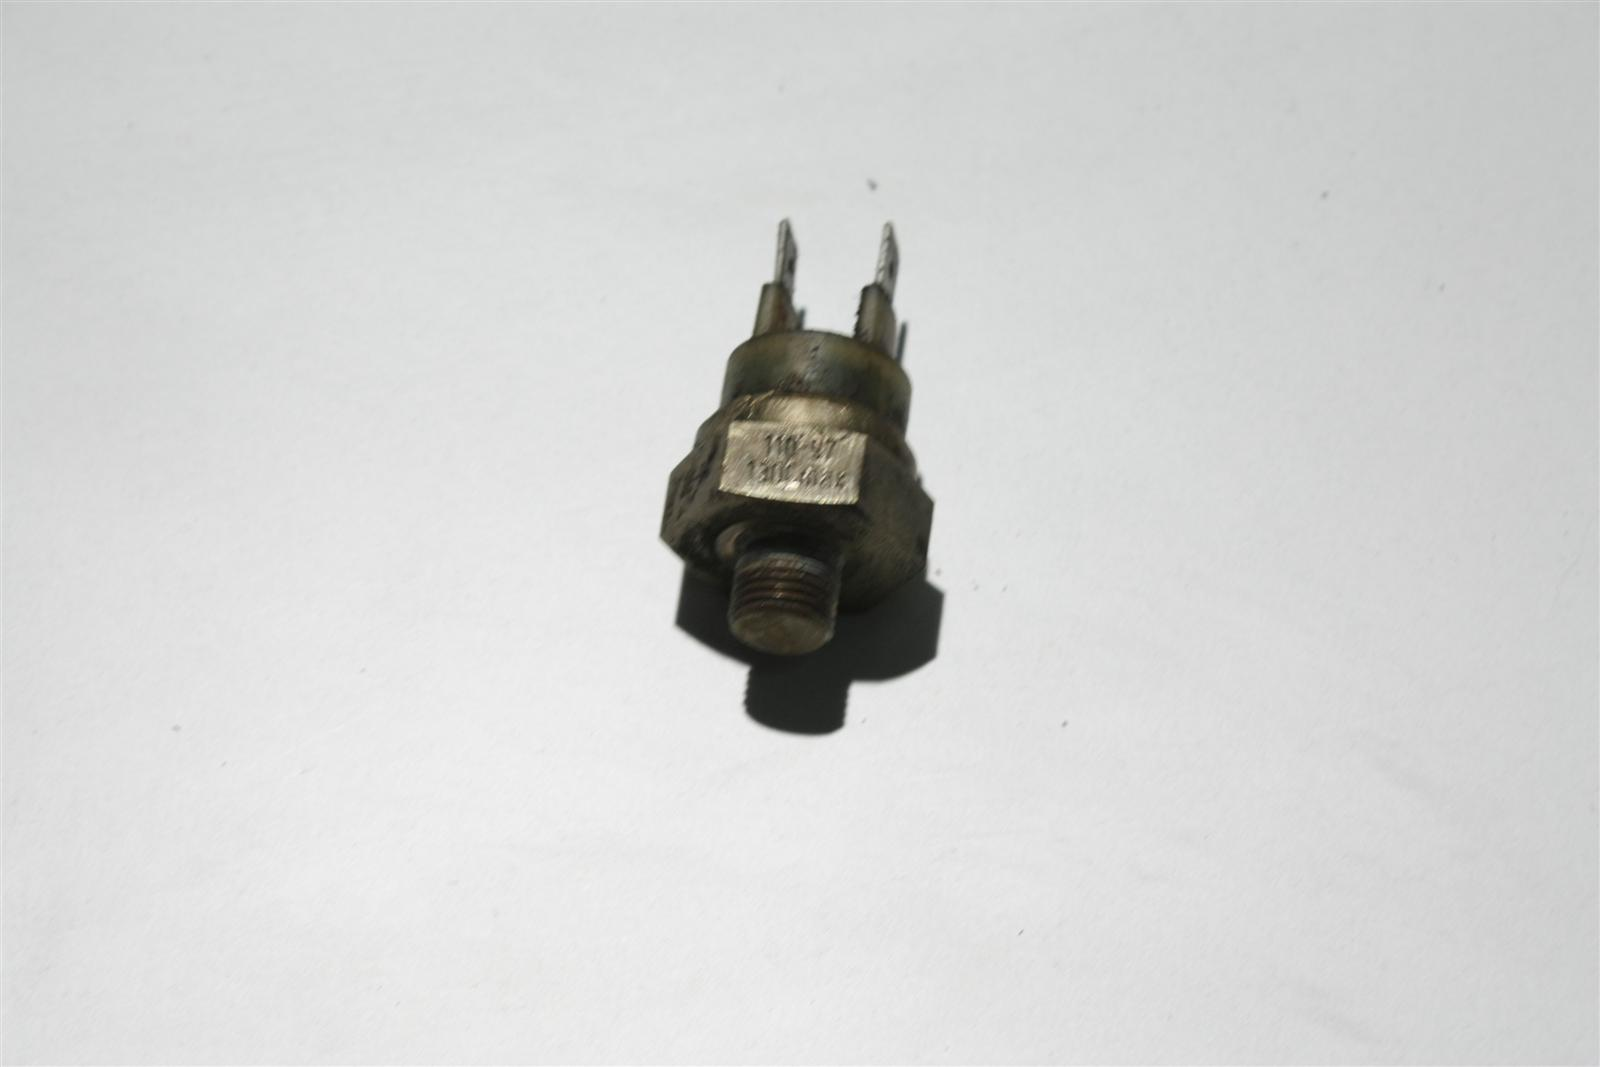 Audi 80/100/A6 C4 Thermoschalter 035919369S 054919369B